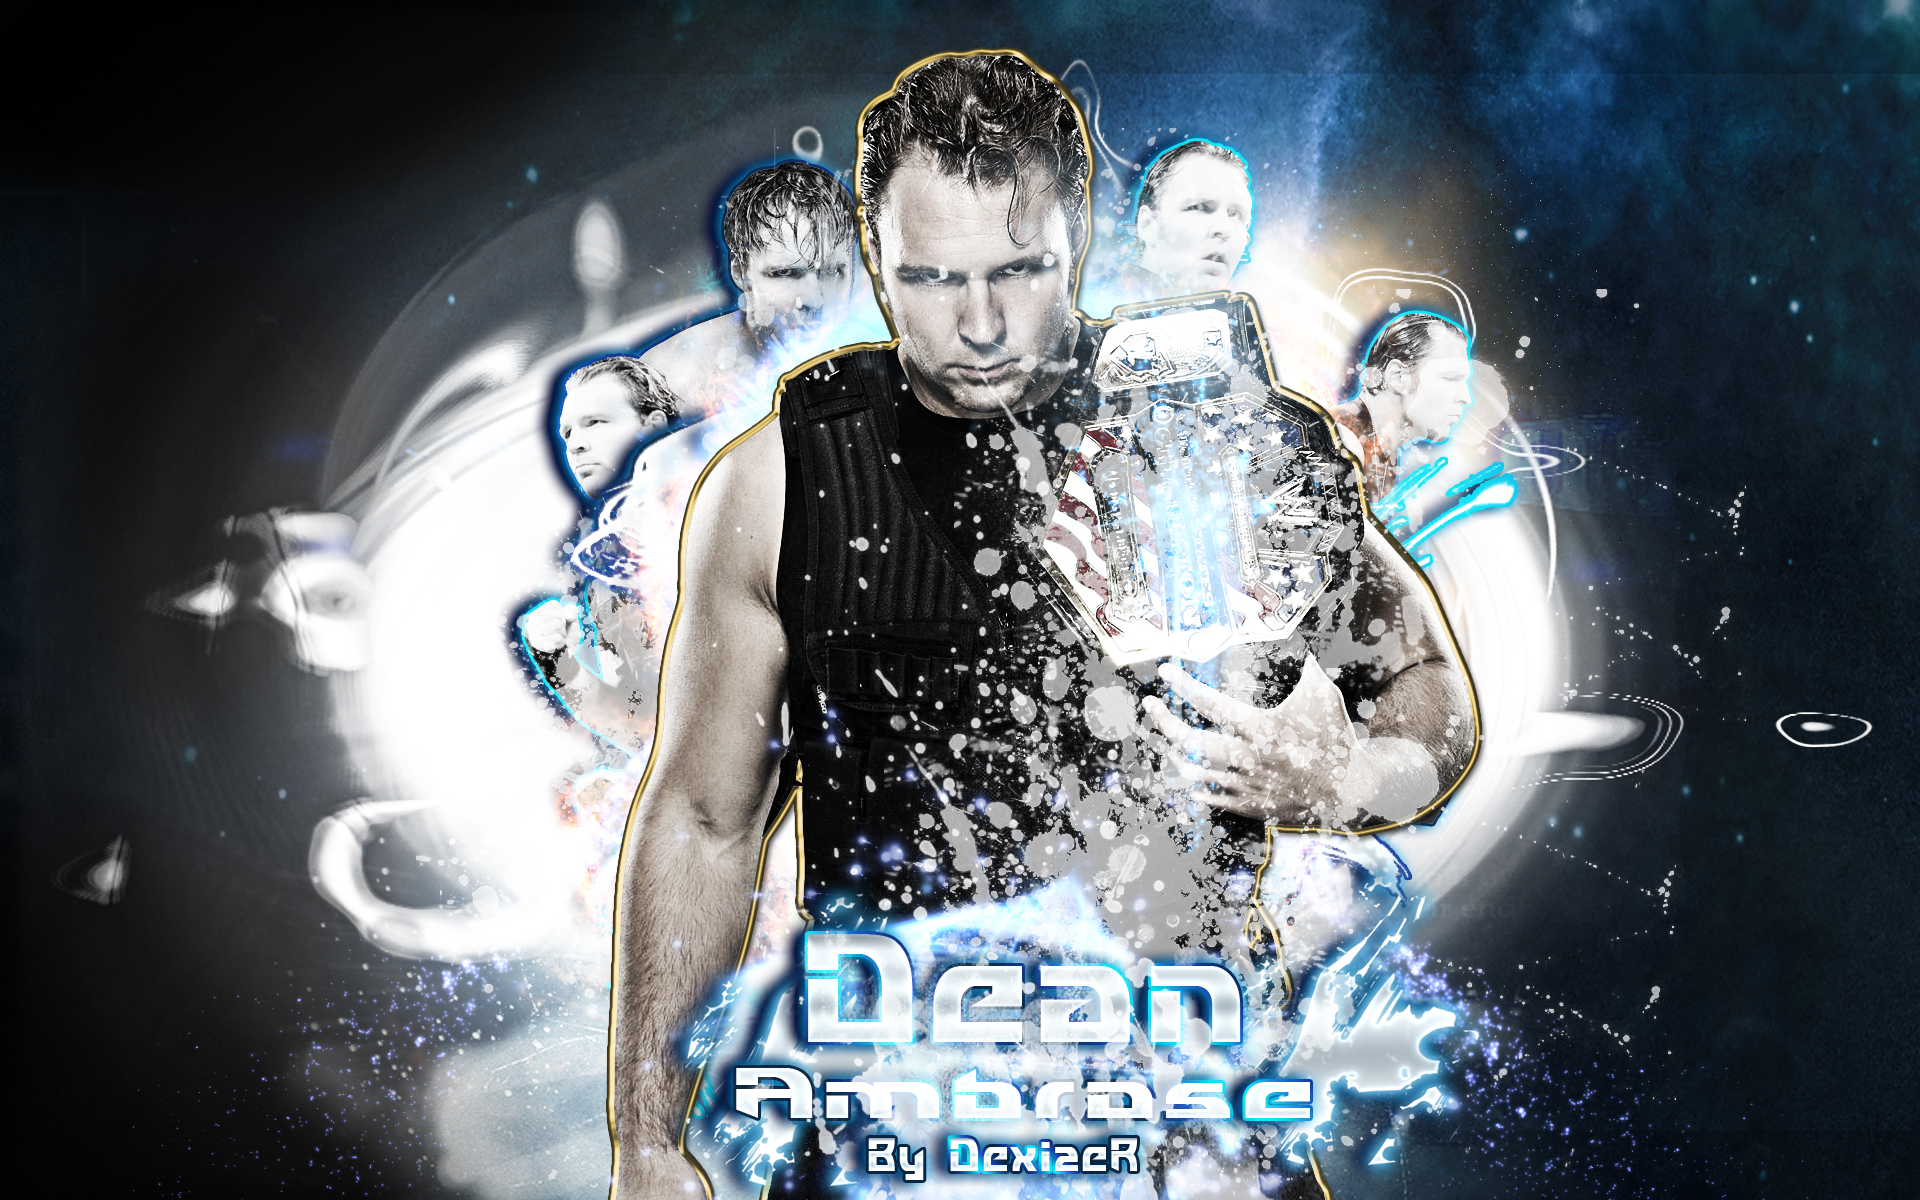 wwe dean ambrose 2014 by smiledexizer fan art wallpaper other 2014 1920x1200